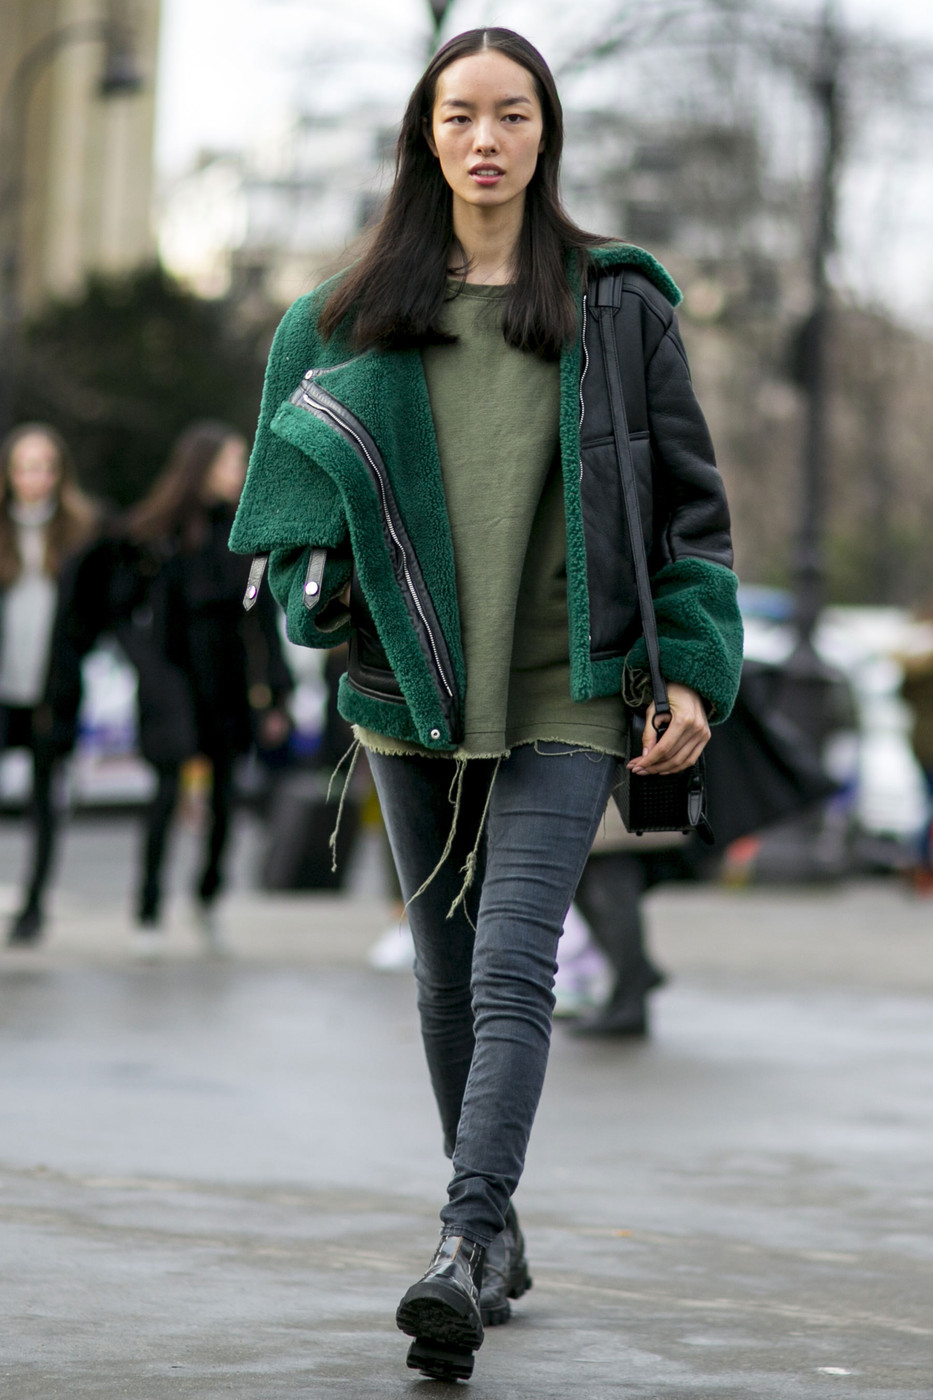 Fantastic Street Style: Fei Fei Sun's Green Shearling Jacket - The Front Row  NQ65